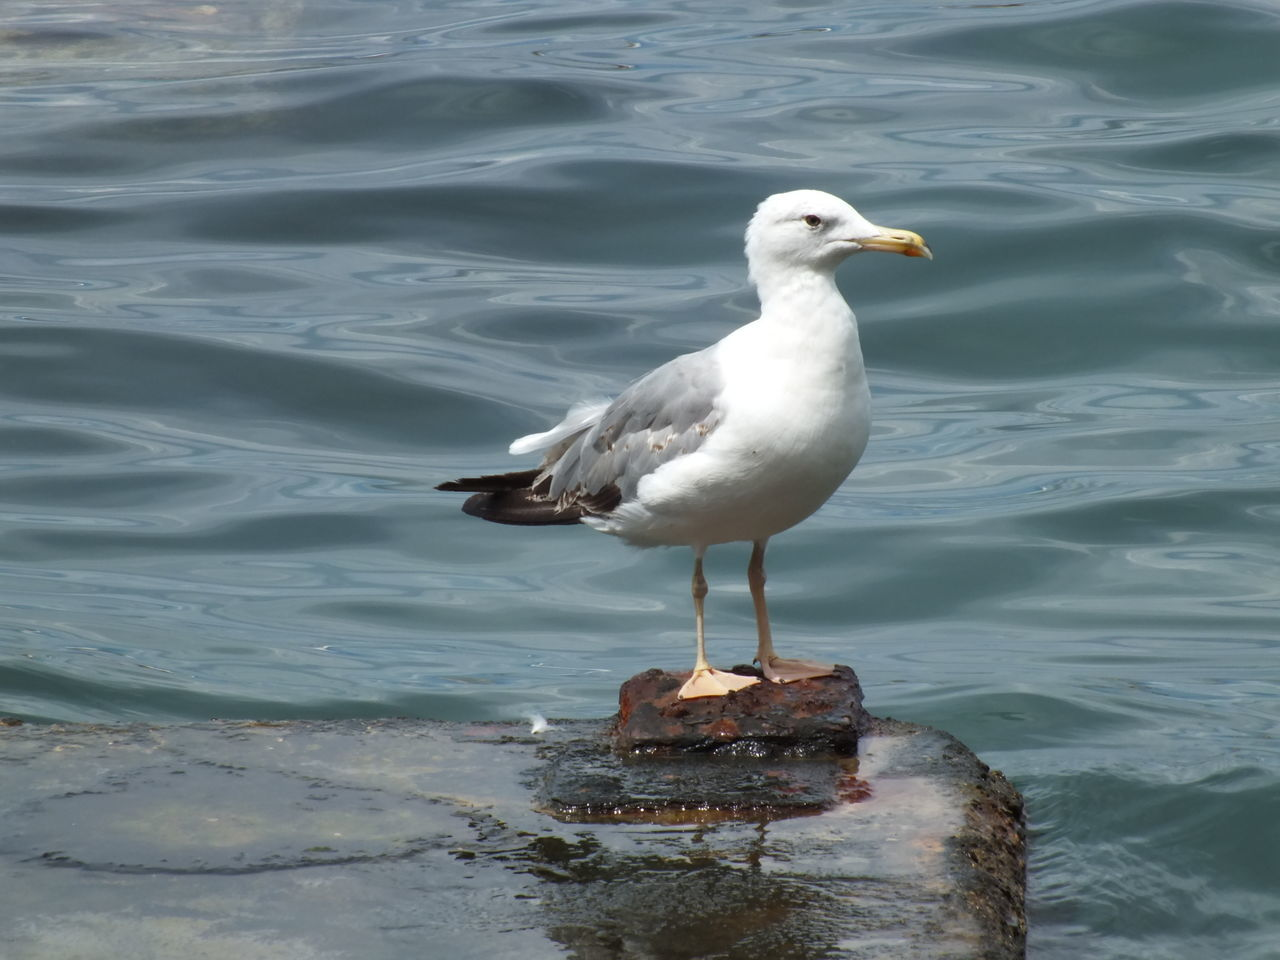 bird, animals in the wild, animal themes, one animal, water, animal wildlife, day, nature, seagull, outdoors, no people, lake, perching